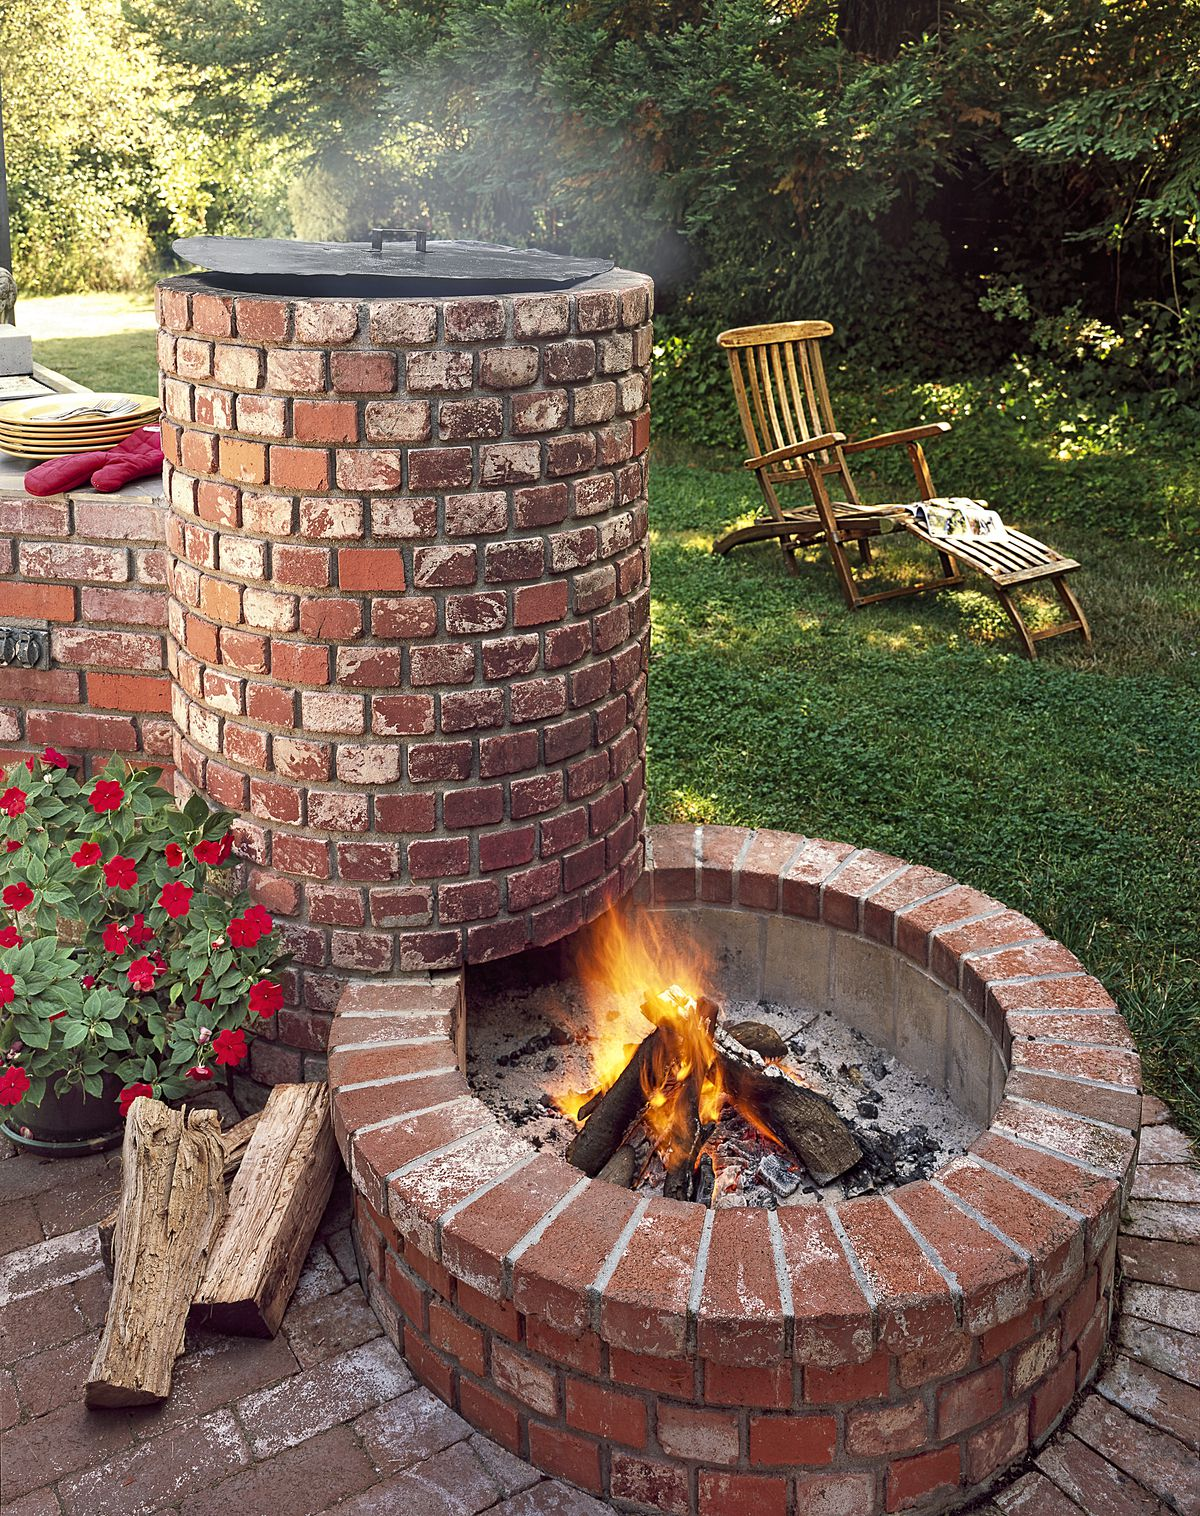 Brick barbecue fire pit on a patio.